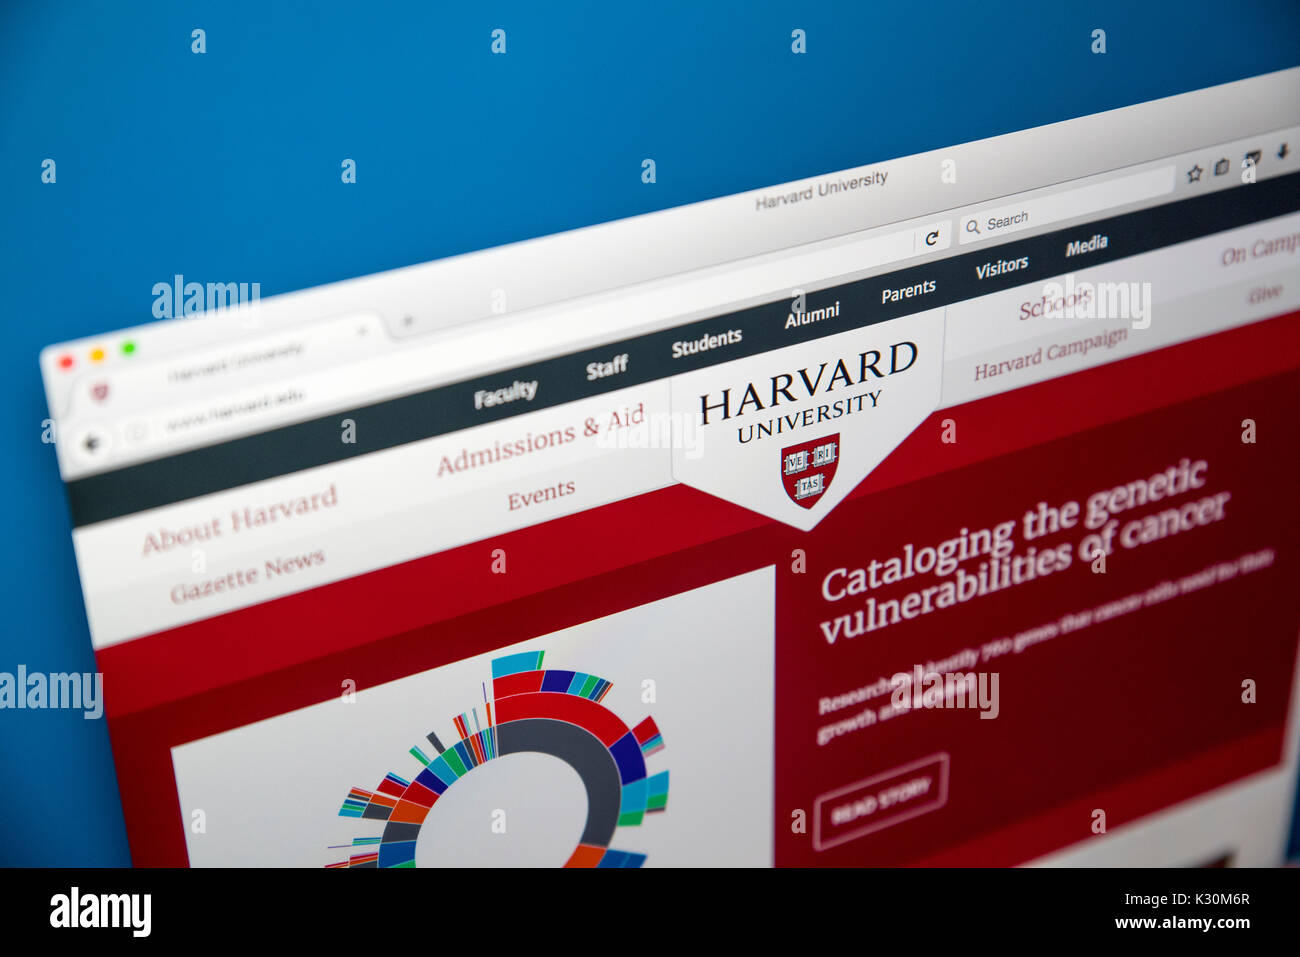 LONDON, UK - AUGUST 7TH 2017: The homepage of the official website for Harvard University - located in Massachusetts, Stock Photo